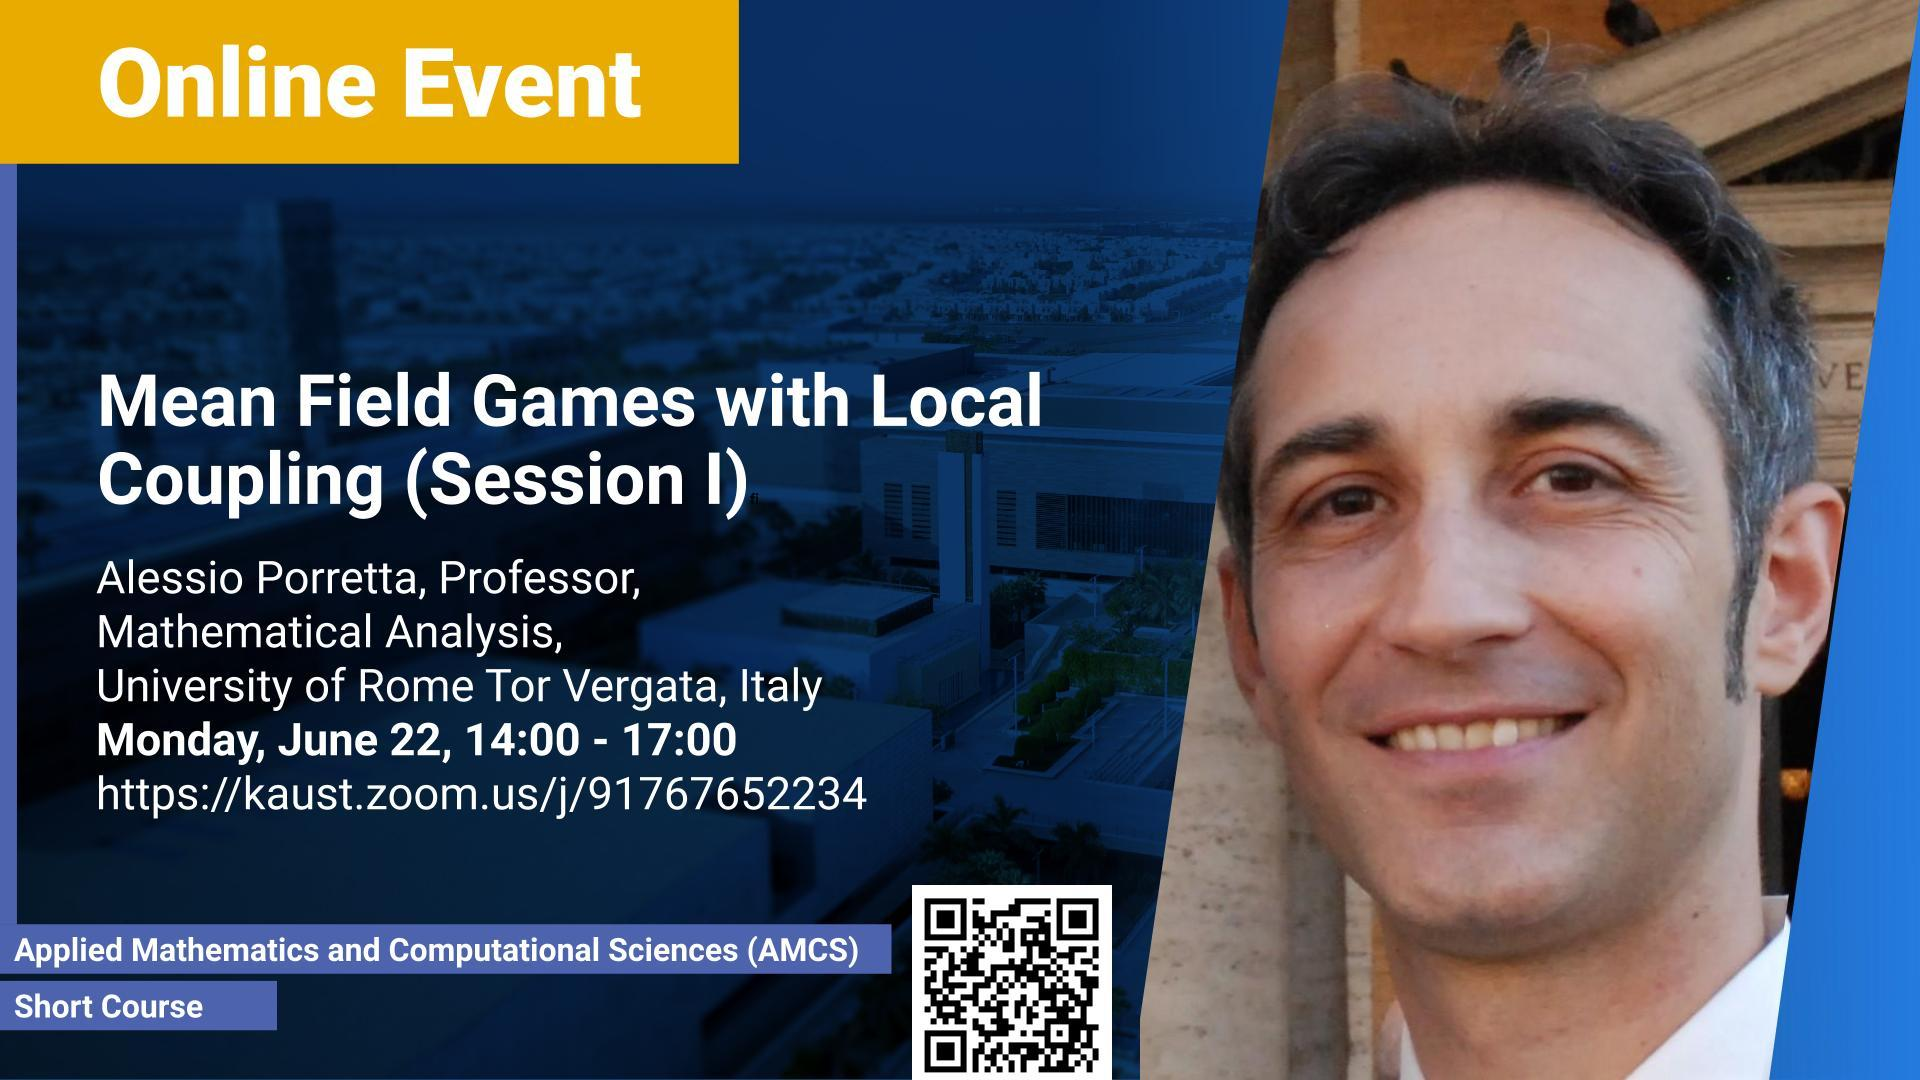 KAUST-CEMSE-AMCS-Short Course-Alessio Porretta-Mean field games with local coupling